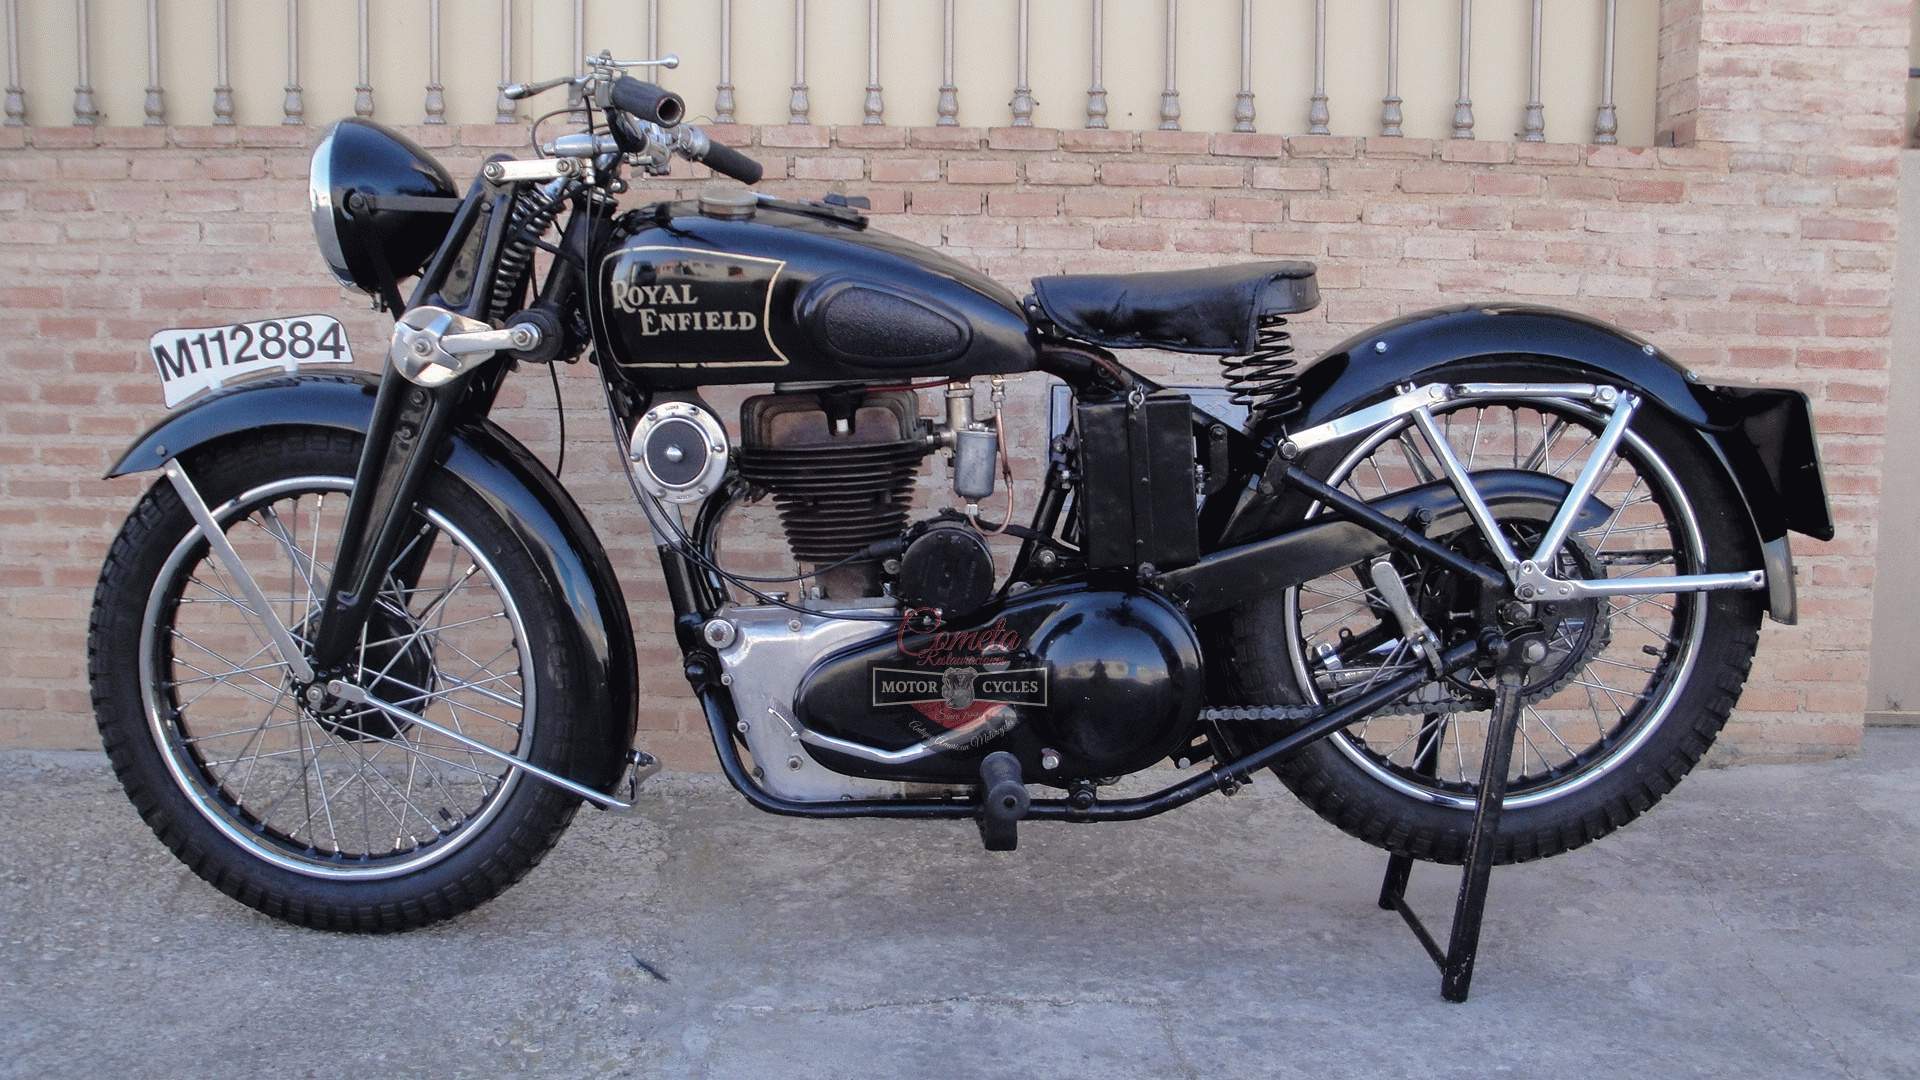 ROYAL ENFIELD J 500 OHV AÑO 1936  CON SIDECAR !